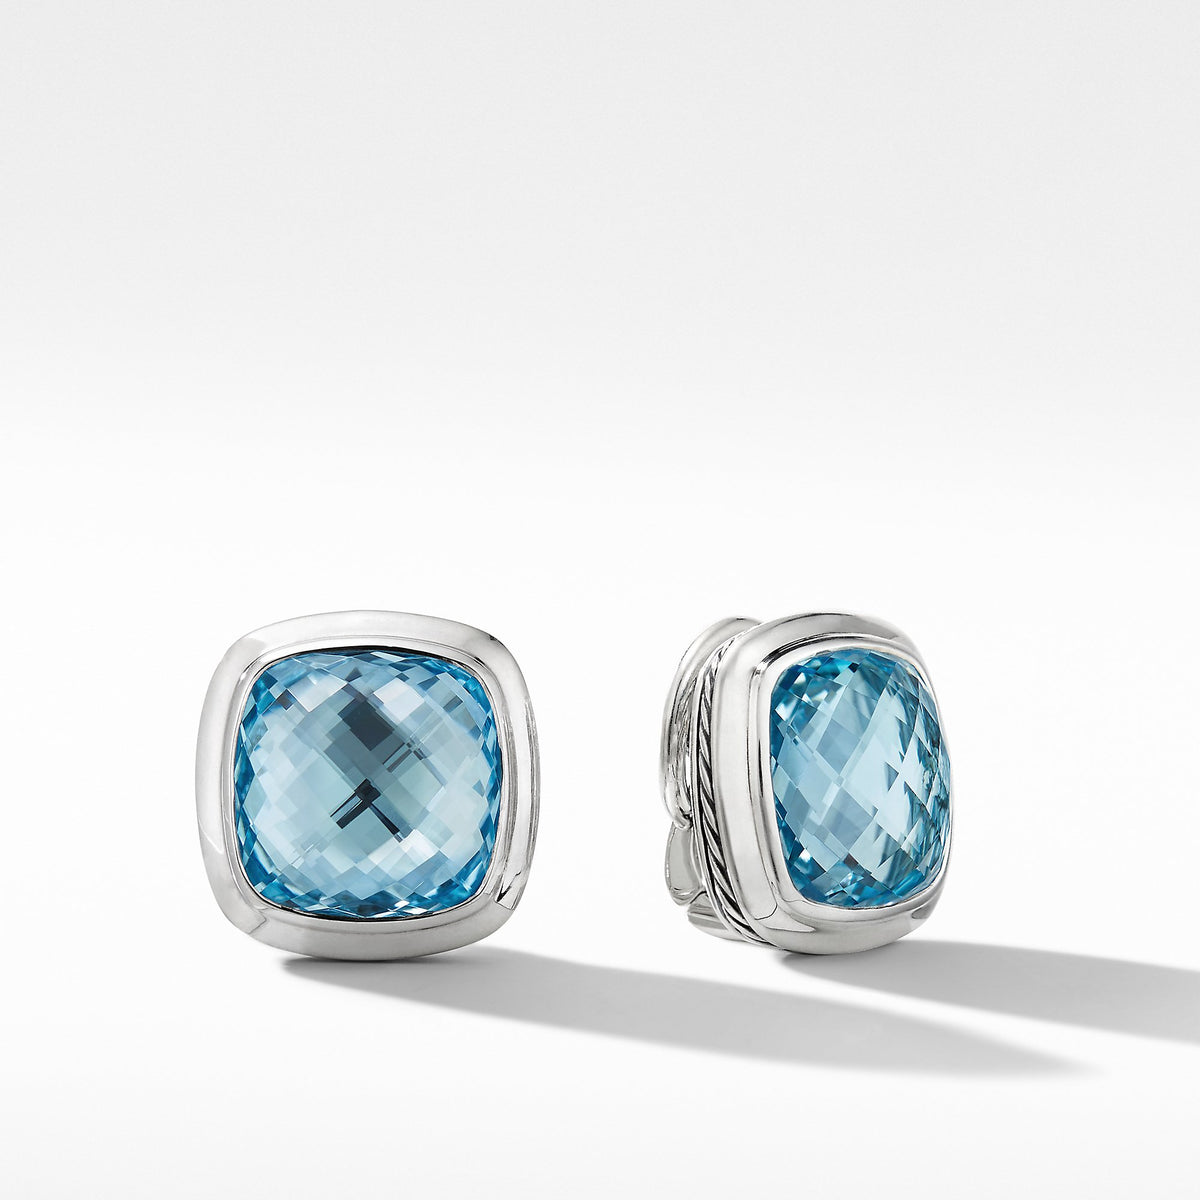 Albion Stud Earrings with Blue Topaz